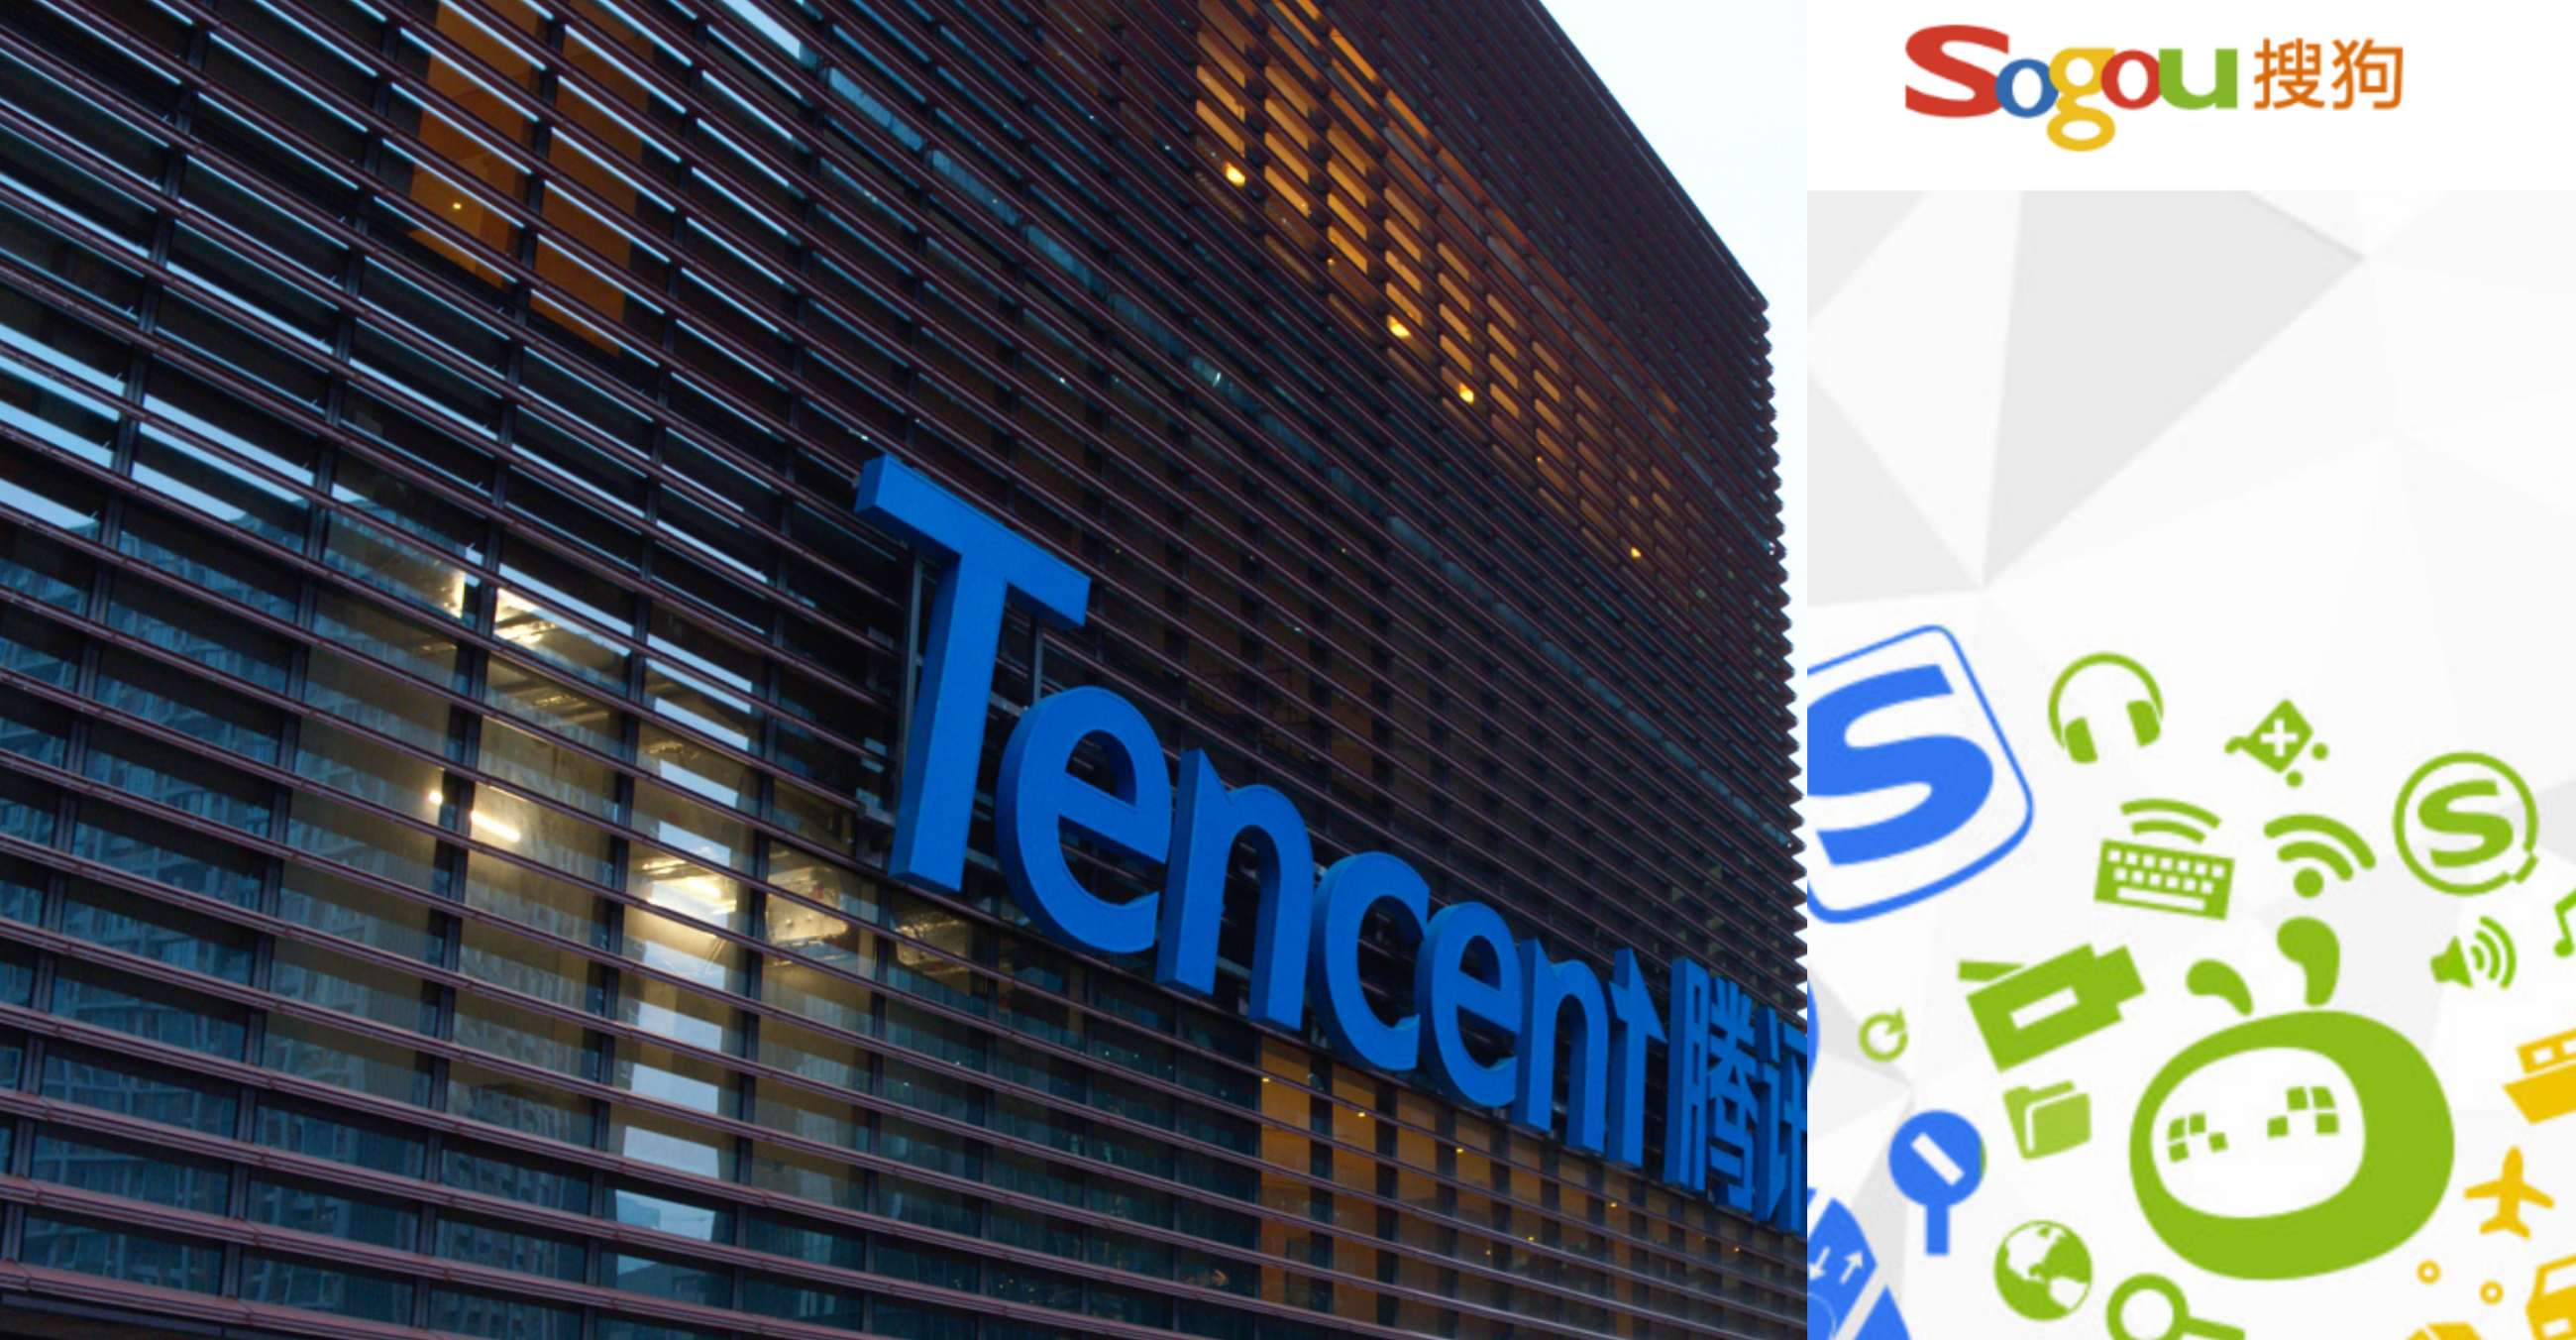 Chinese Search Specialist Sogou Receives Tencent Buyout Offer